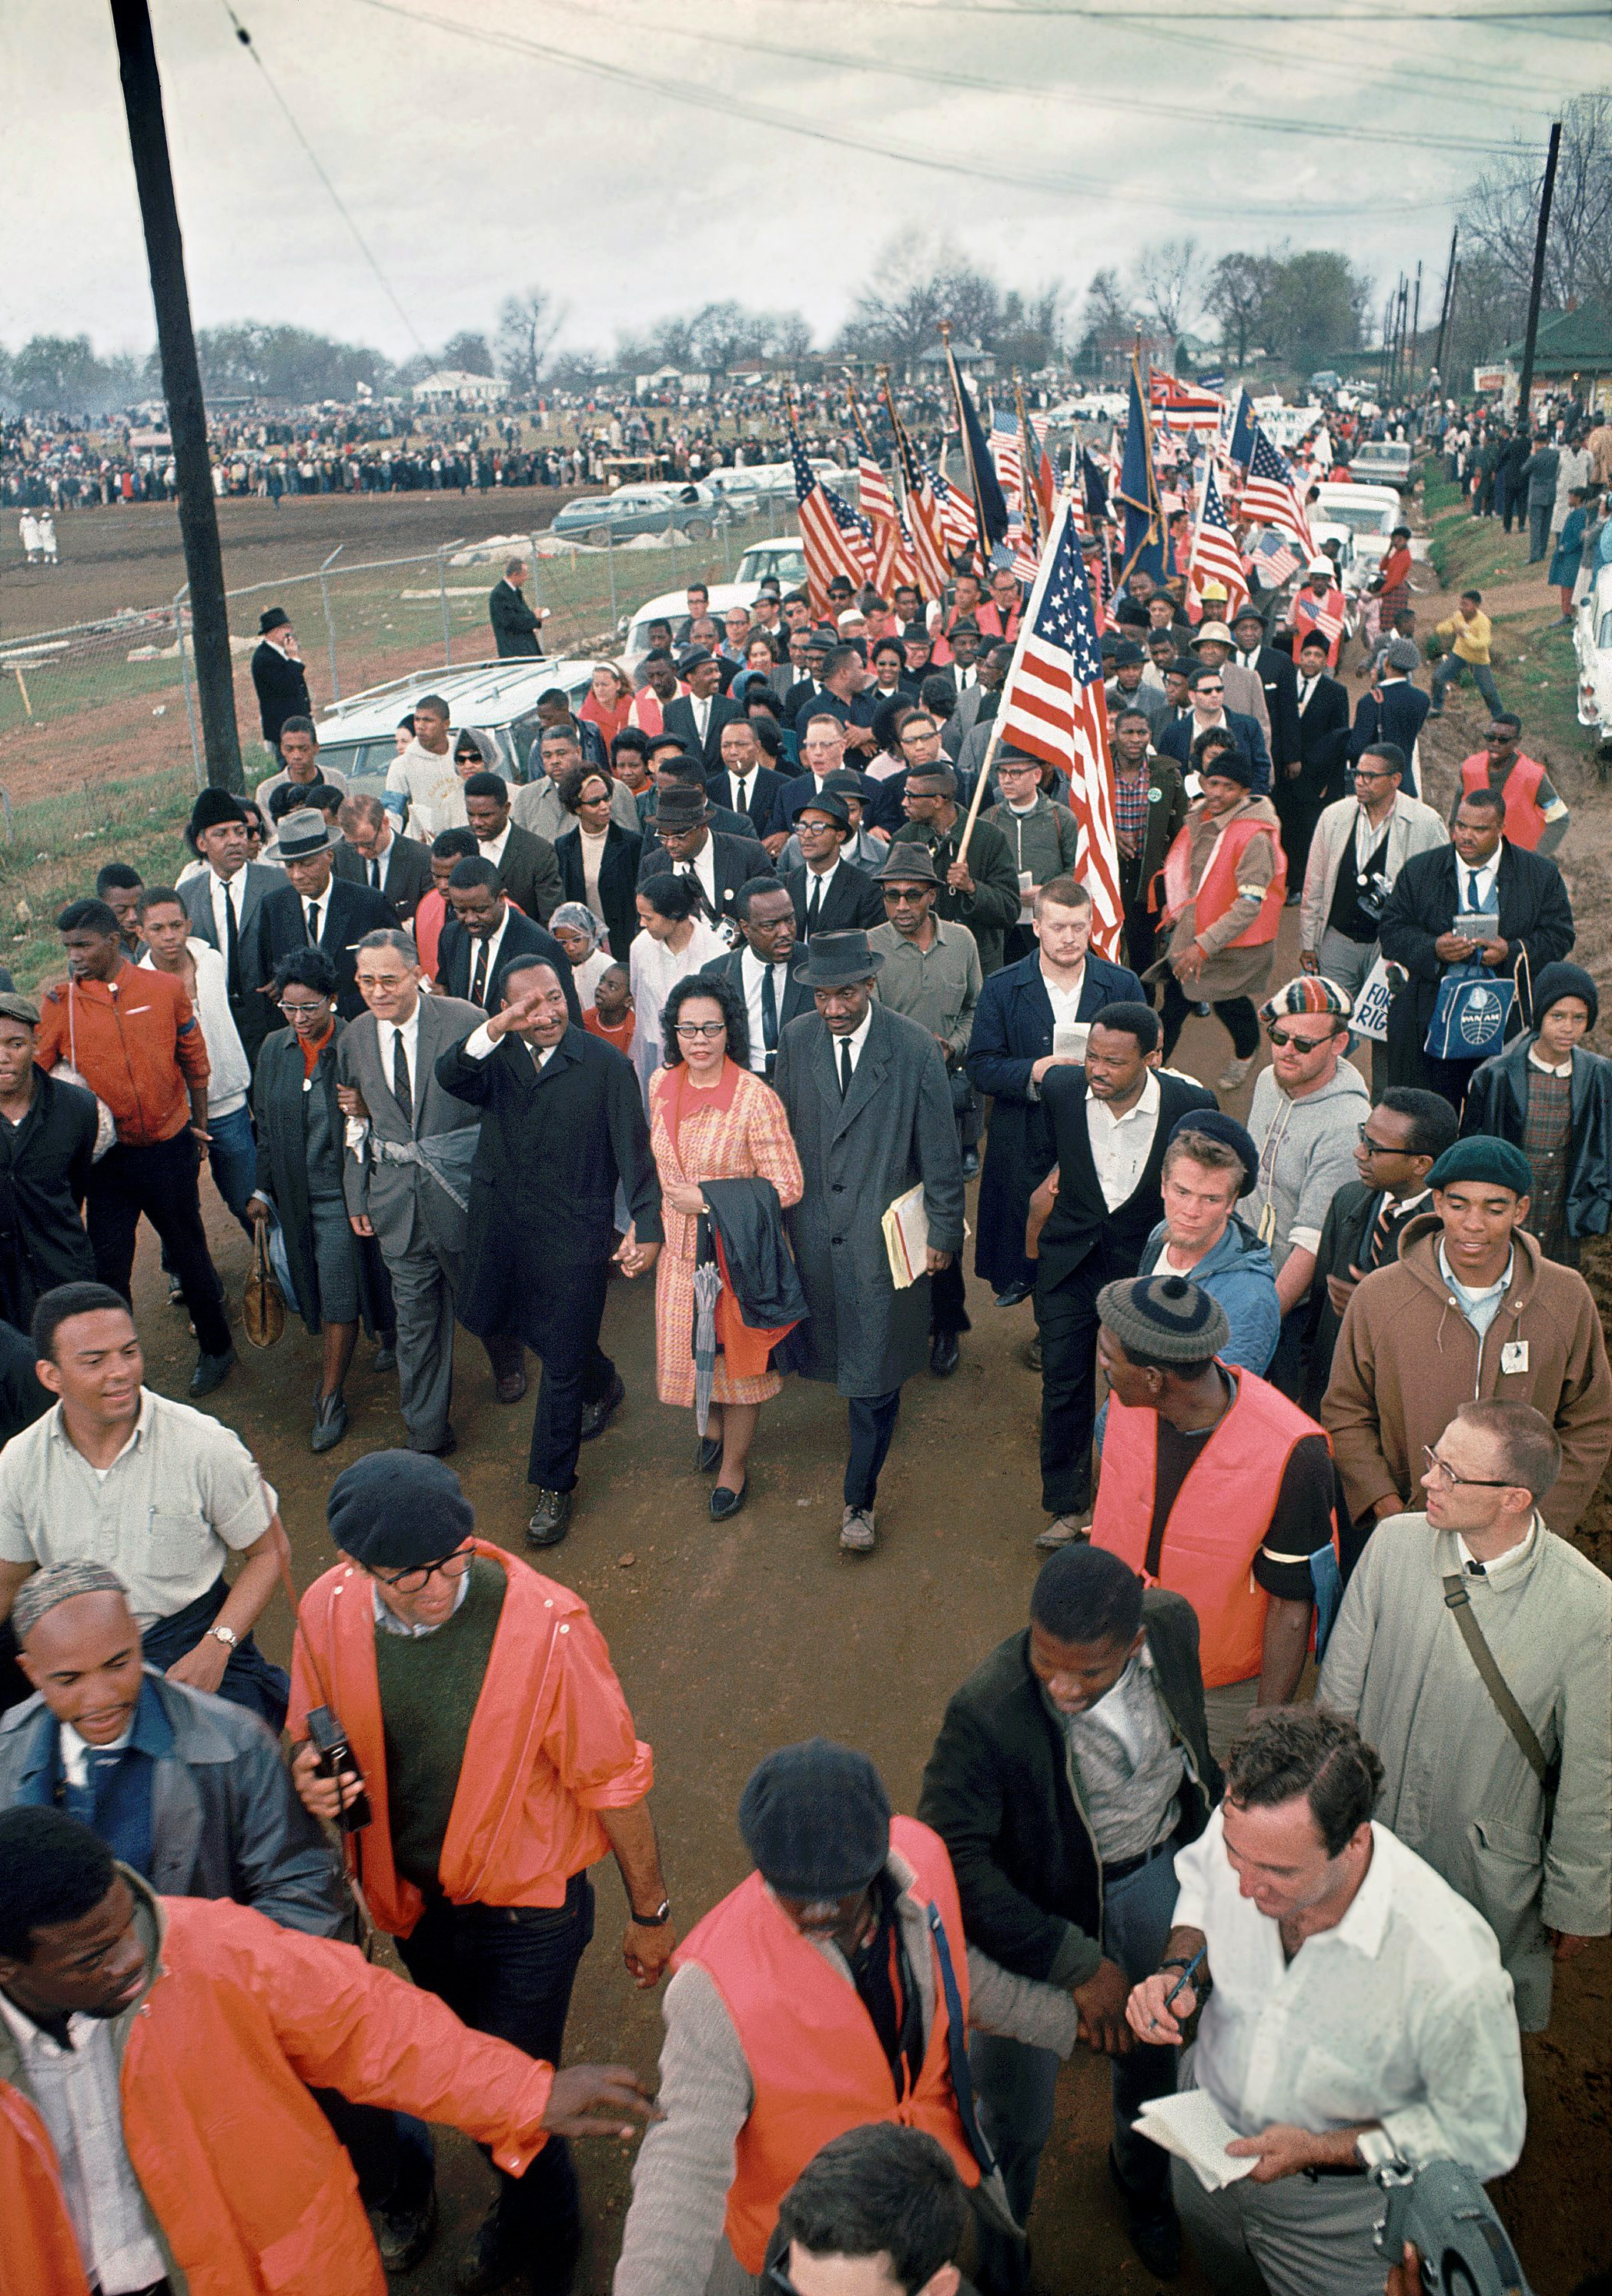 Here he is in the final stage of the Selma March. My father has said something that has made people laugh, and Andrew Young is looking at him, as King and Coretta walk hand and hand behind them. The scene is alive with color, there are lots of flags and the reds are especially vivid, as if all are bloodied; it is the next best thing to having my father alive again. (The Image Works)